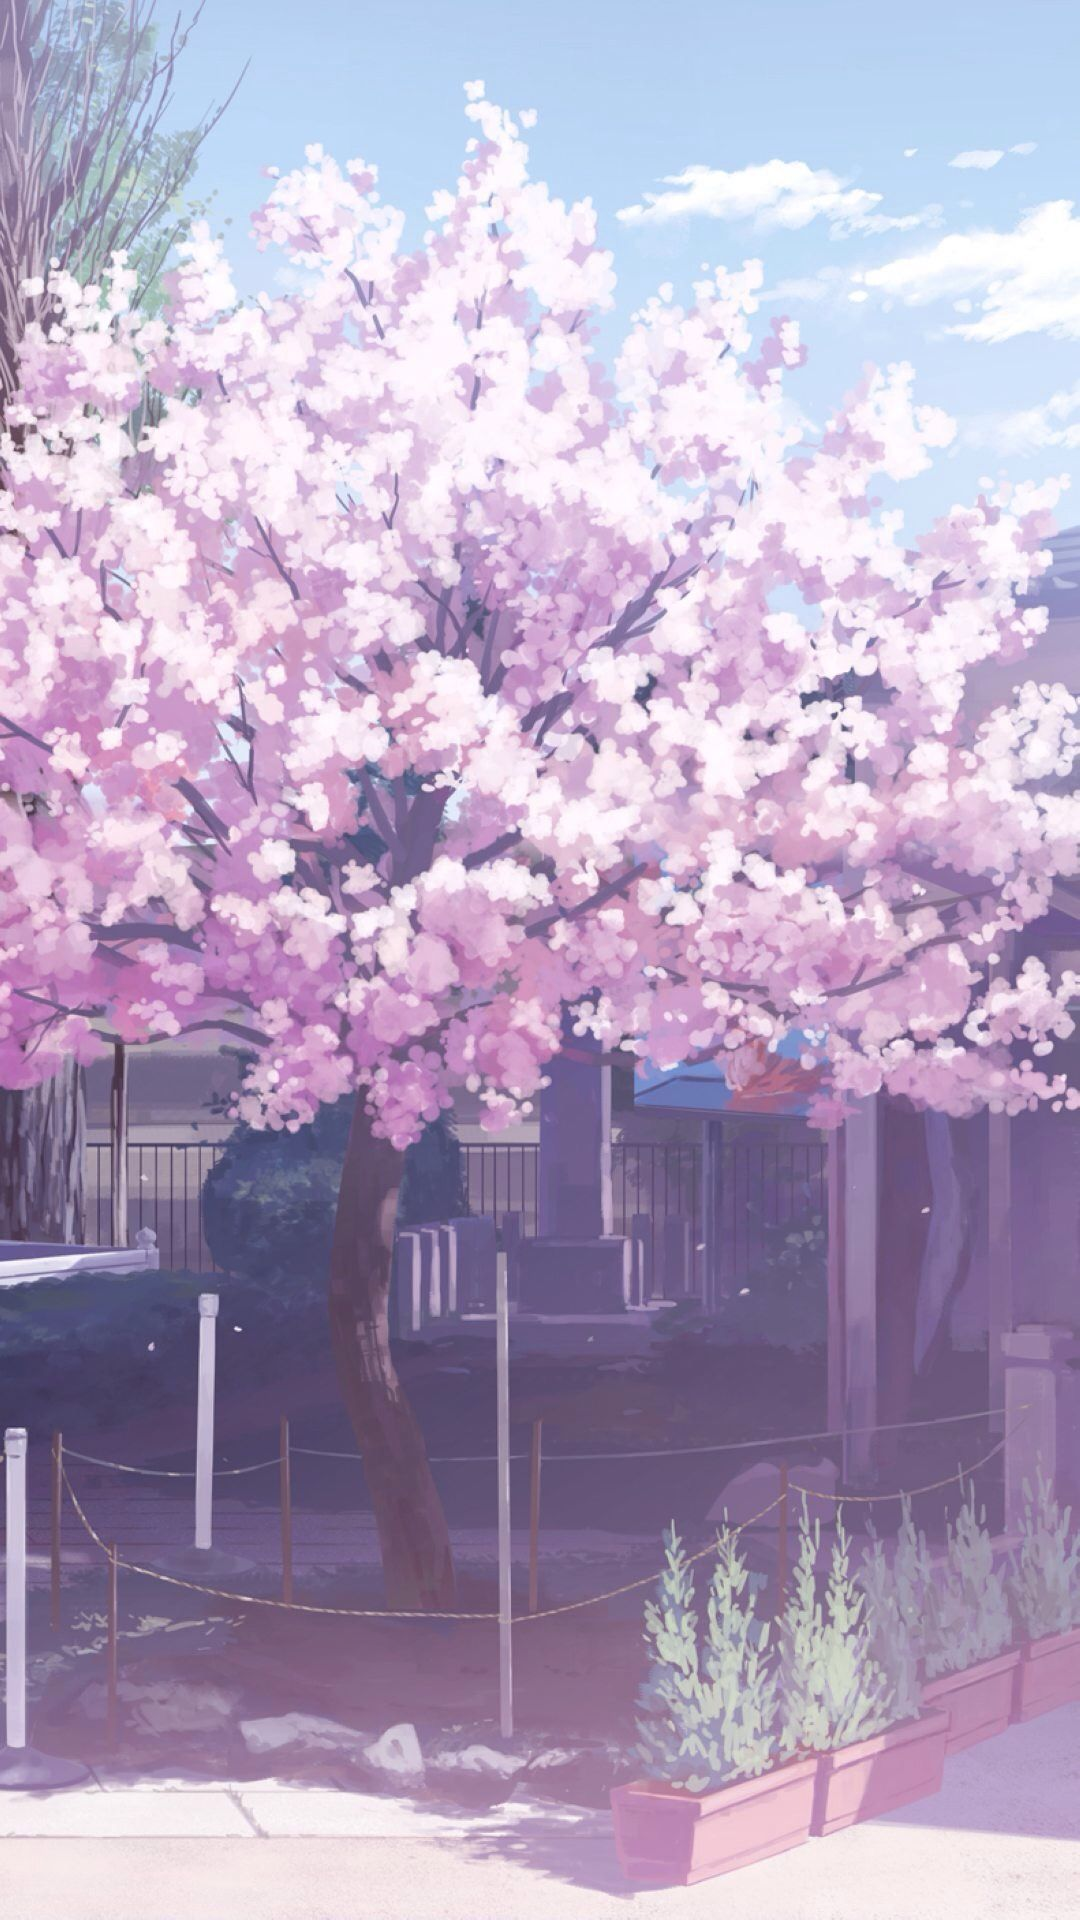 Cherry Blossom Wallpaper Cherry Blossom Wallpaper Beautiful Wallpapers Backgrounds Anime Scenery